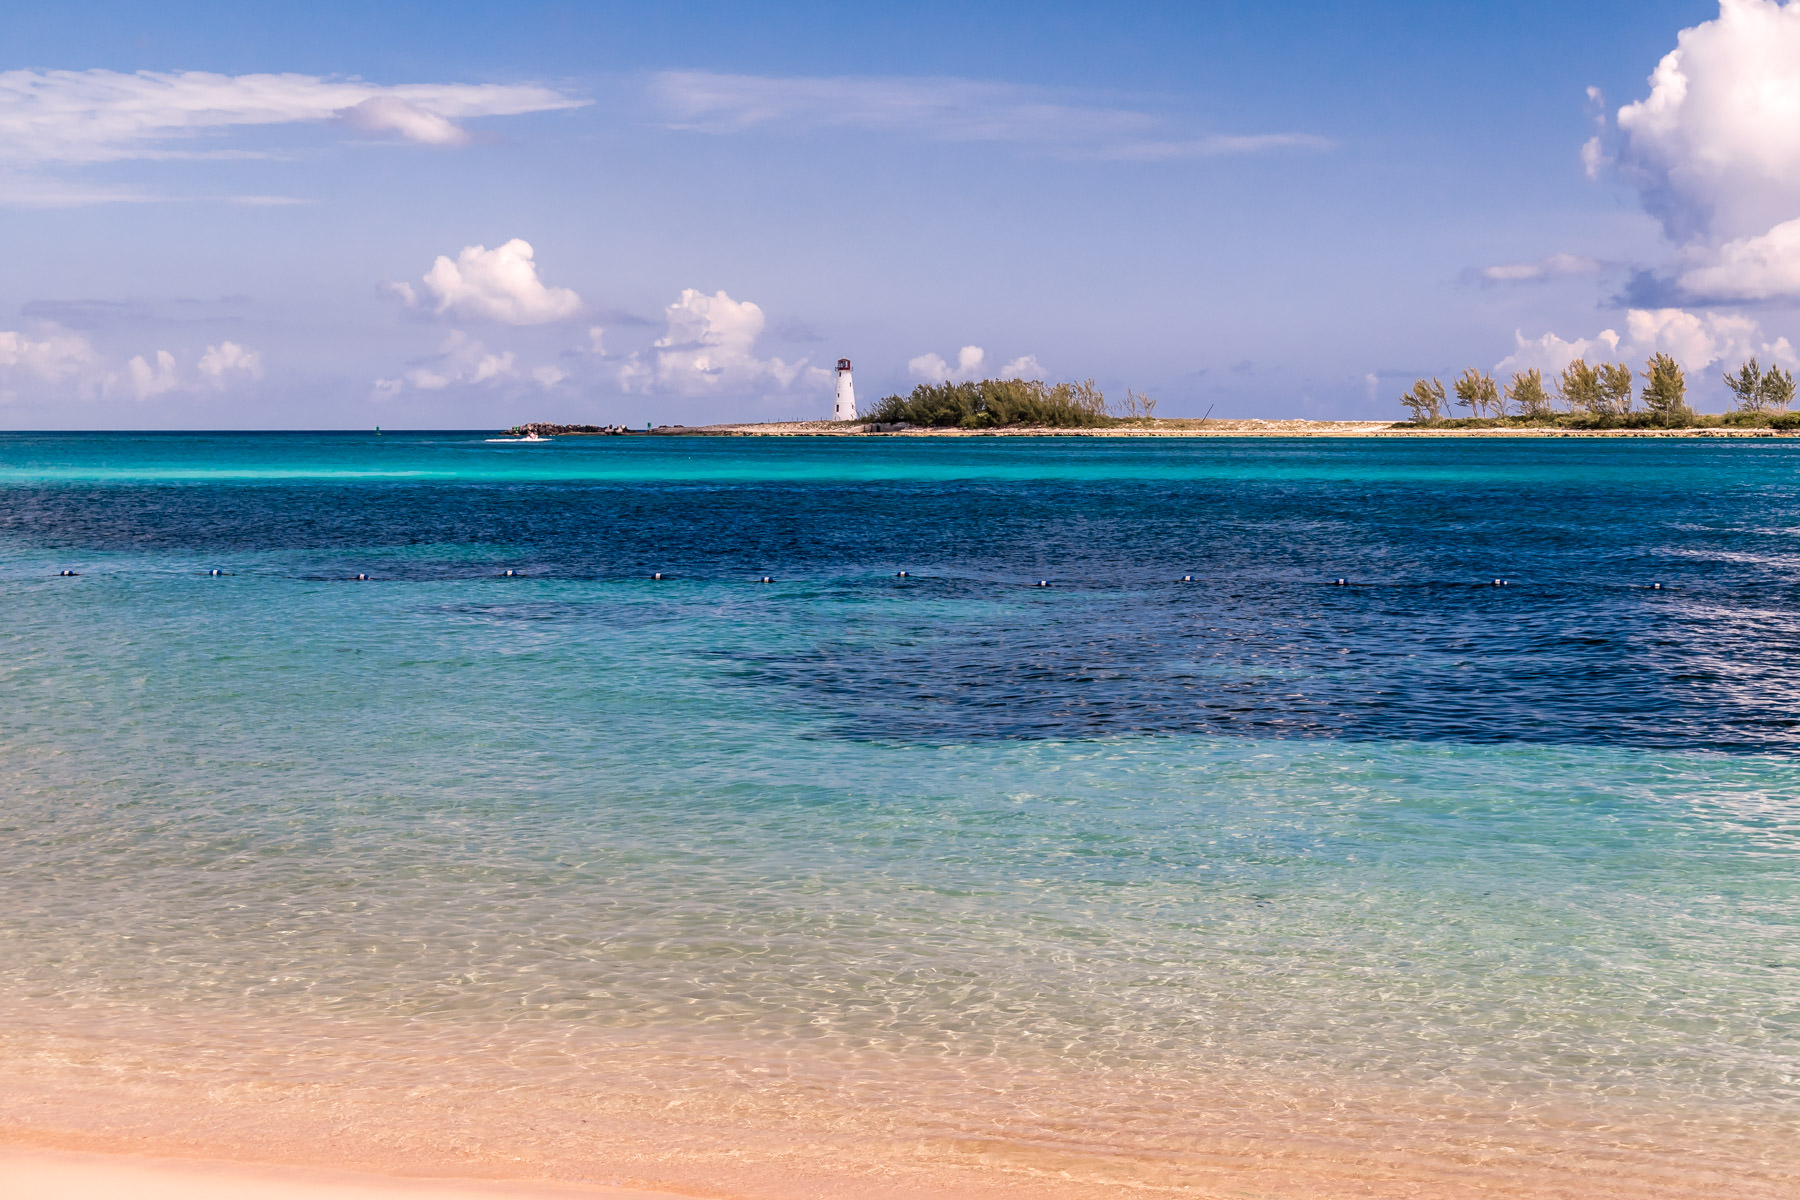 The Bahamas' Nassau Harbour Lighthouse sits abandoned on the western end of Colonial Beach.